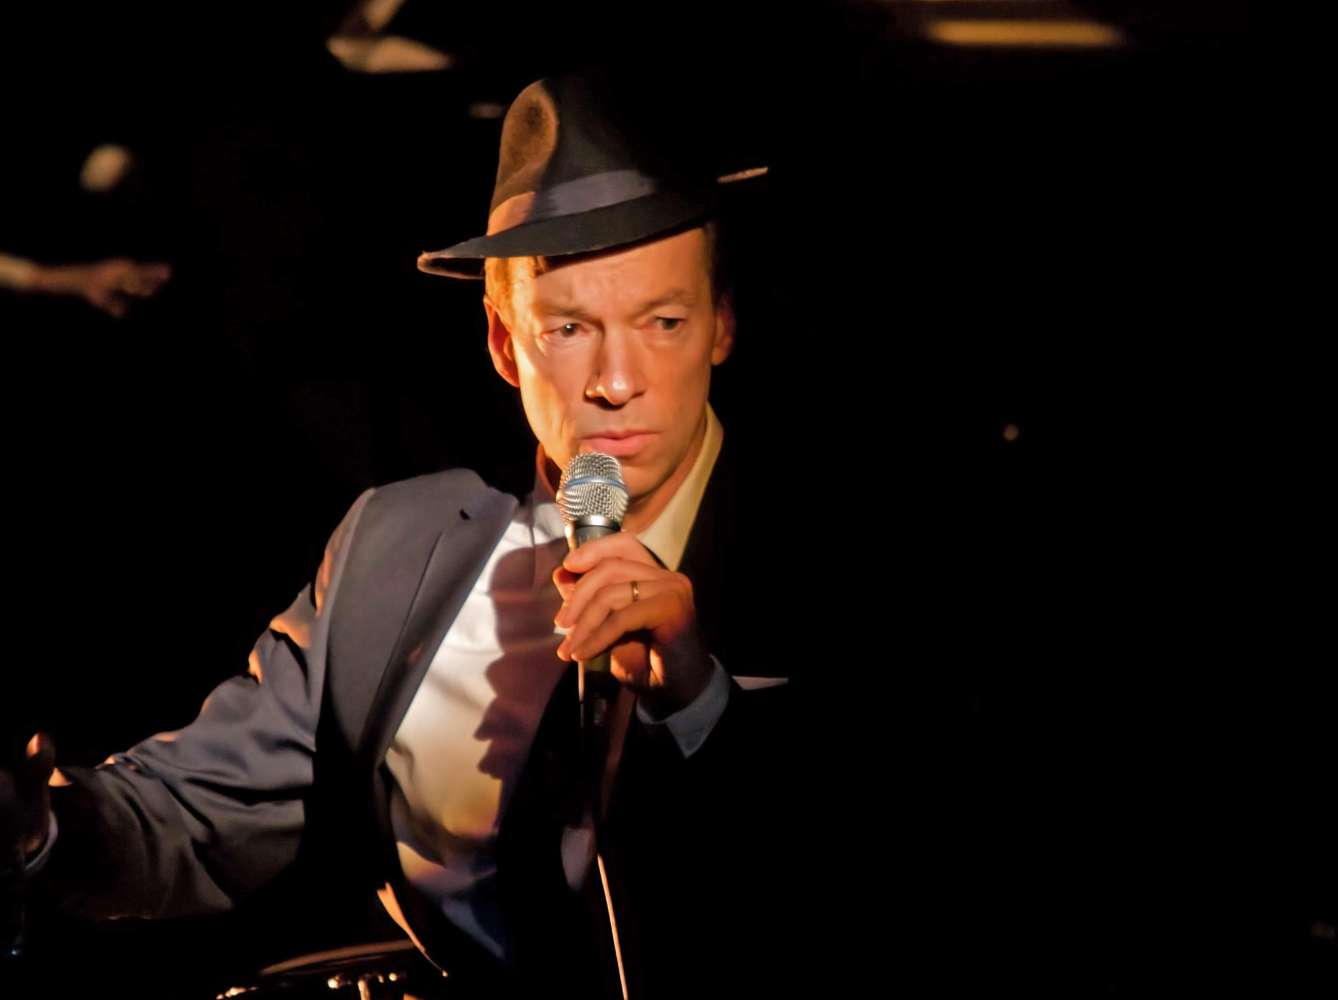 Strictly Sinatra | Surrey Sinatra Tribute Singer For Hire